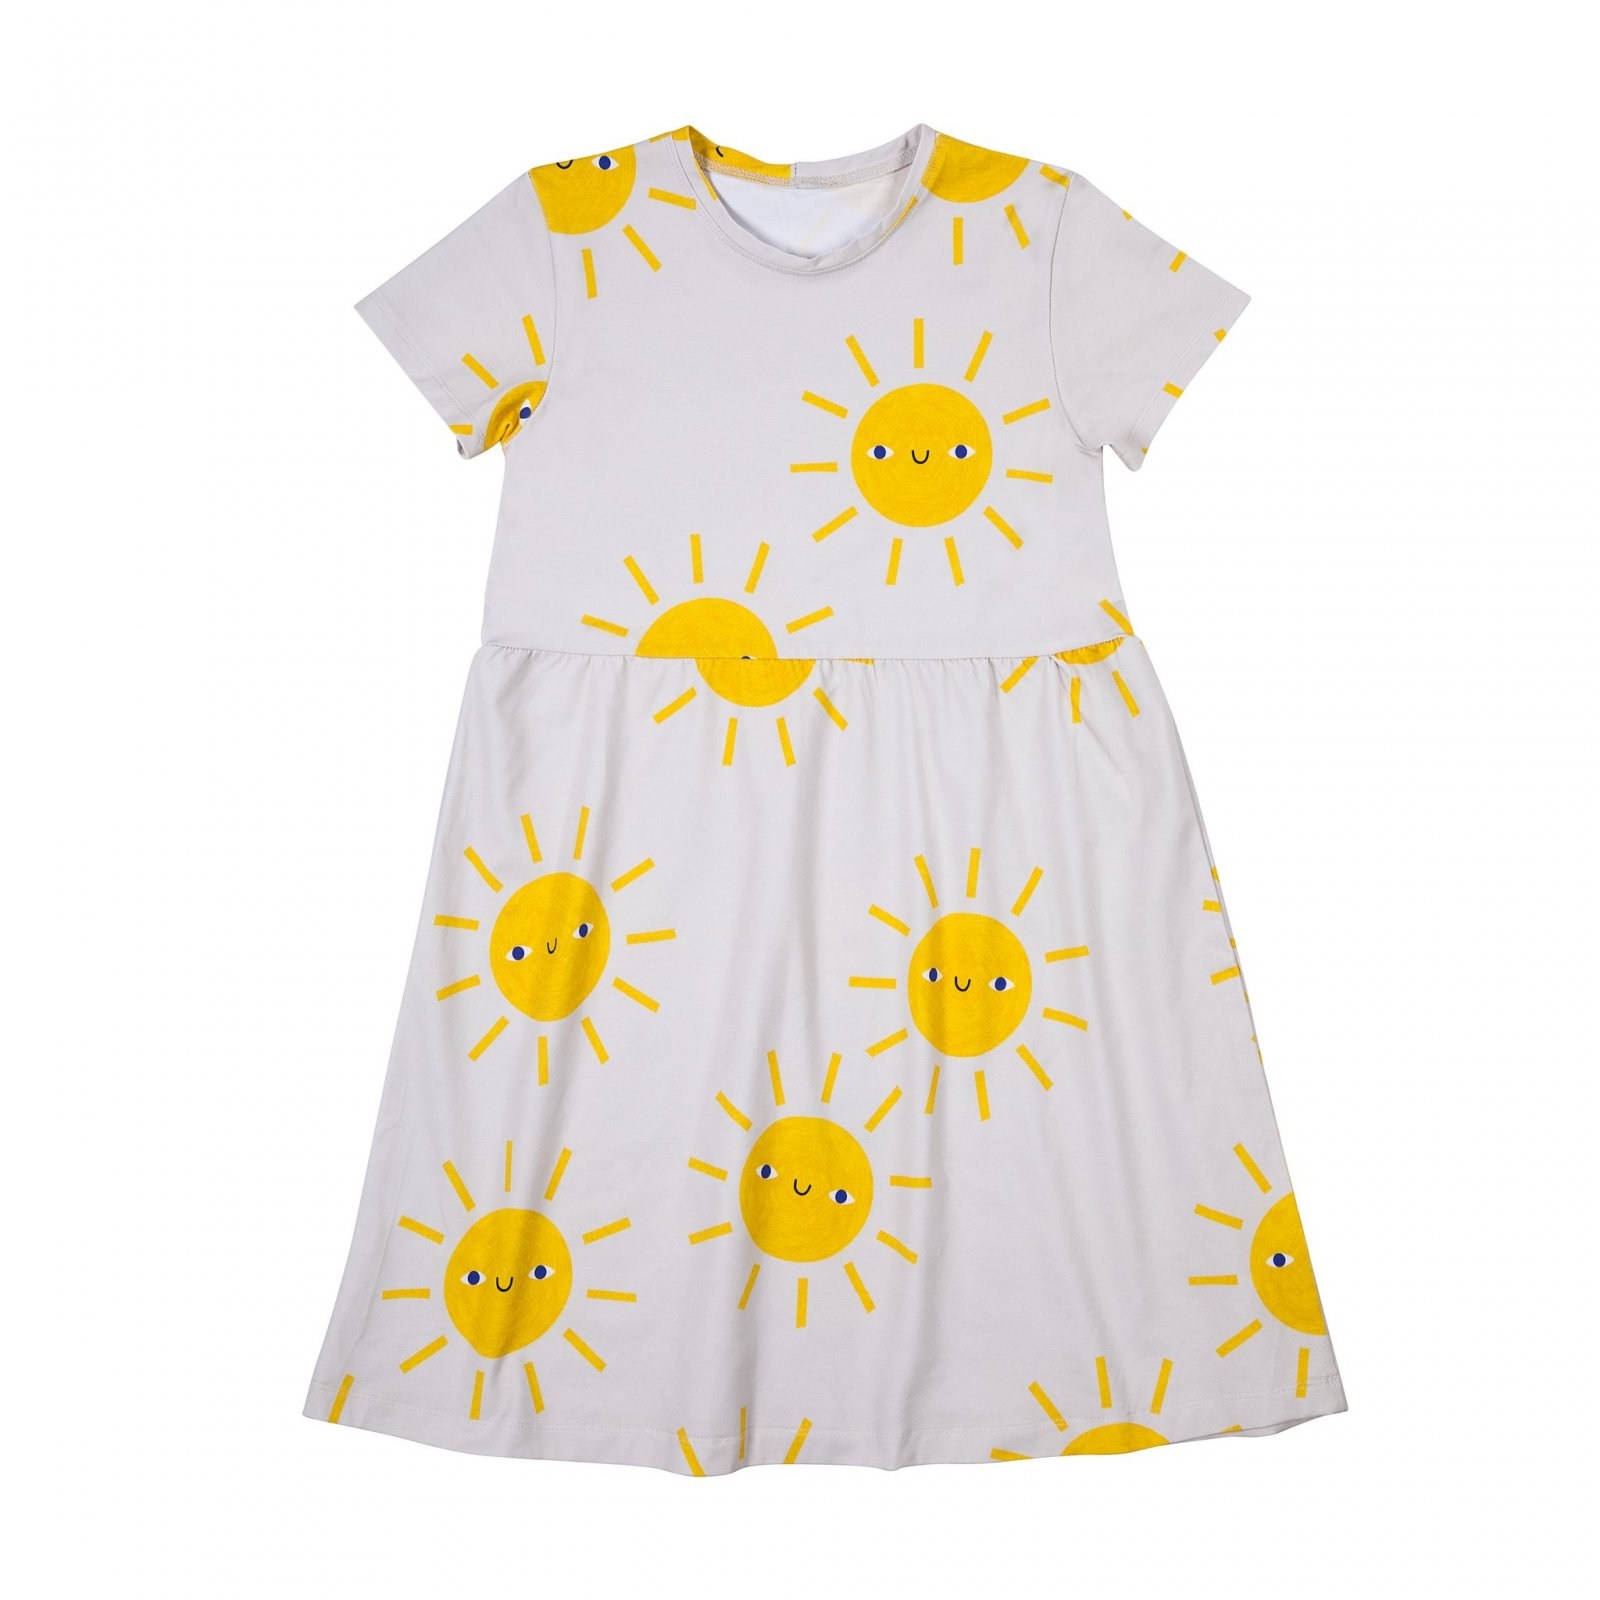 Sunshine Sweetie Baby Dress by Don't Grow Up